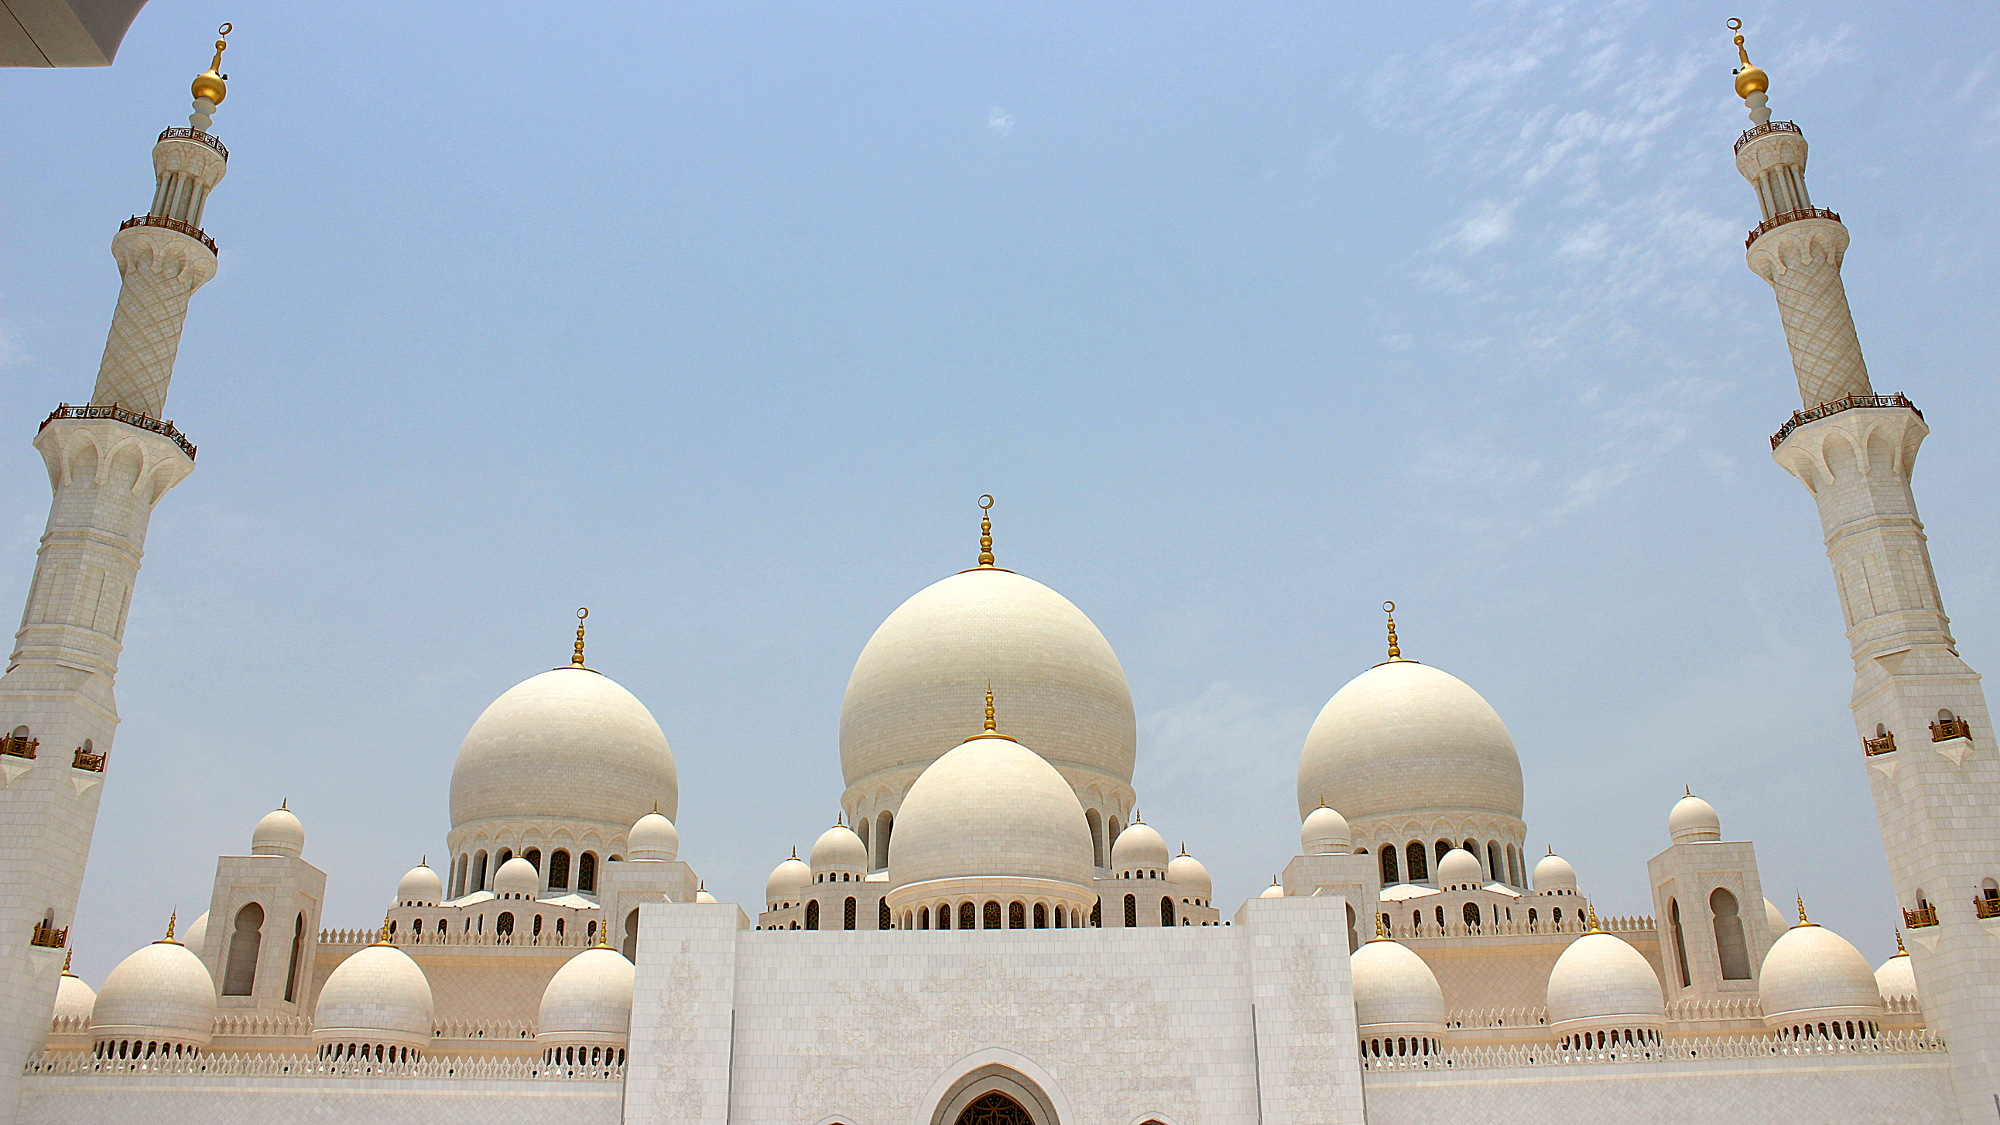 Front view of the Sheikh Zayed Mosque of Abu Dhabi in the summer.